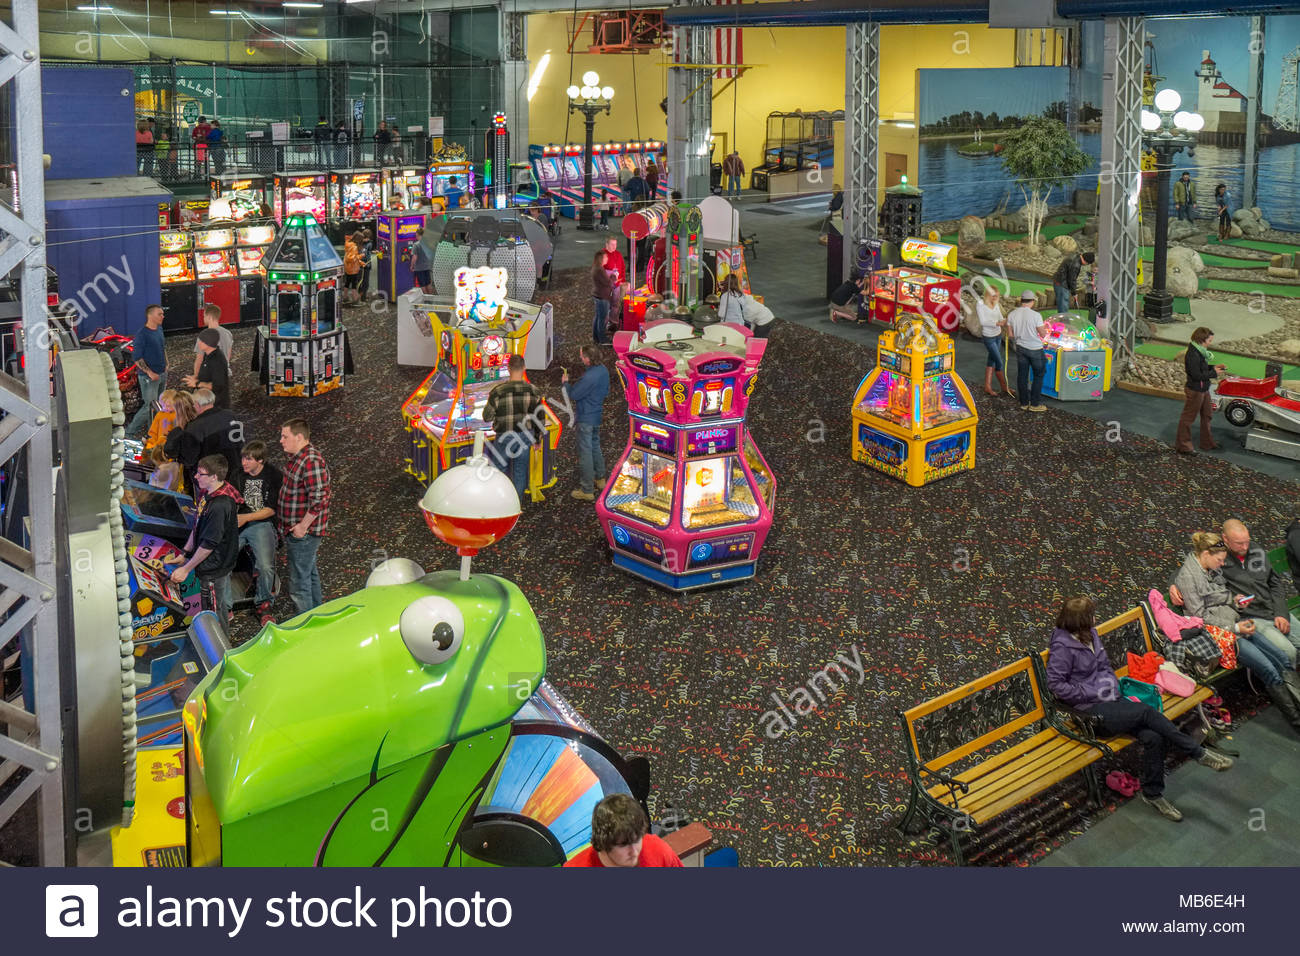 People play at various amusements in the video arcade of Adventure Zone of Canal Park, Duluth, Minnesota. - Stock Image